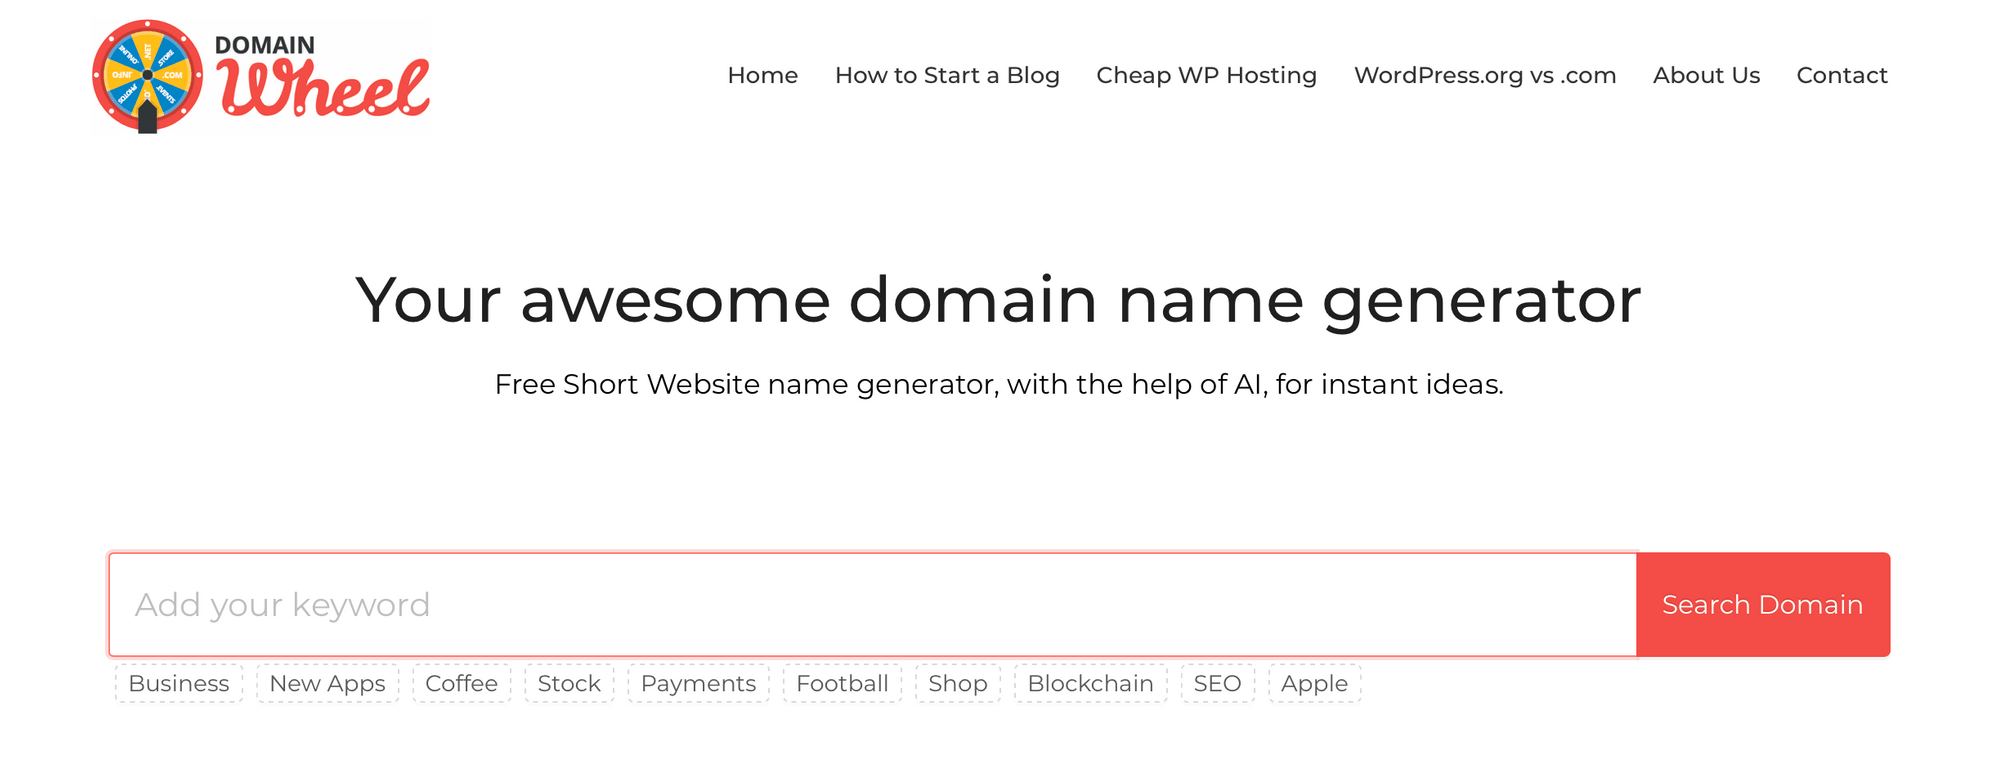 Le site Web Domain Wheel.